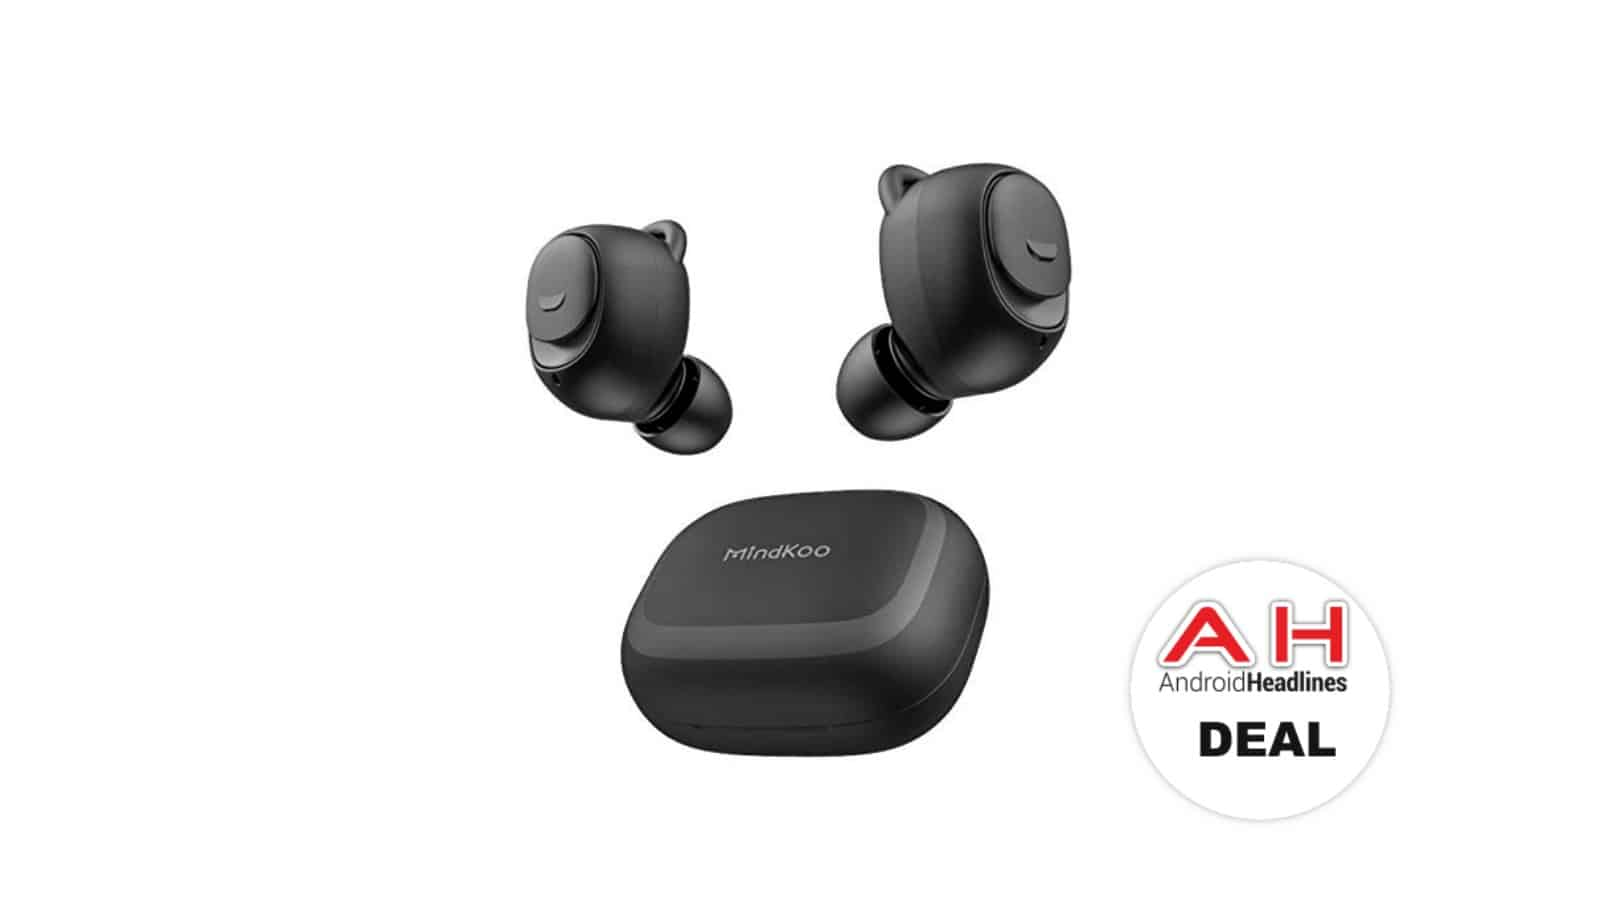 mindkoo truly wireless earbuds deal AH